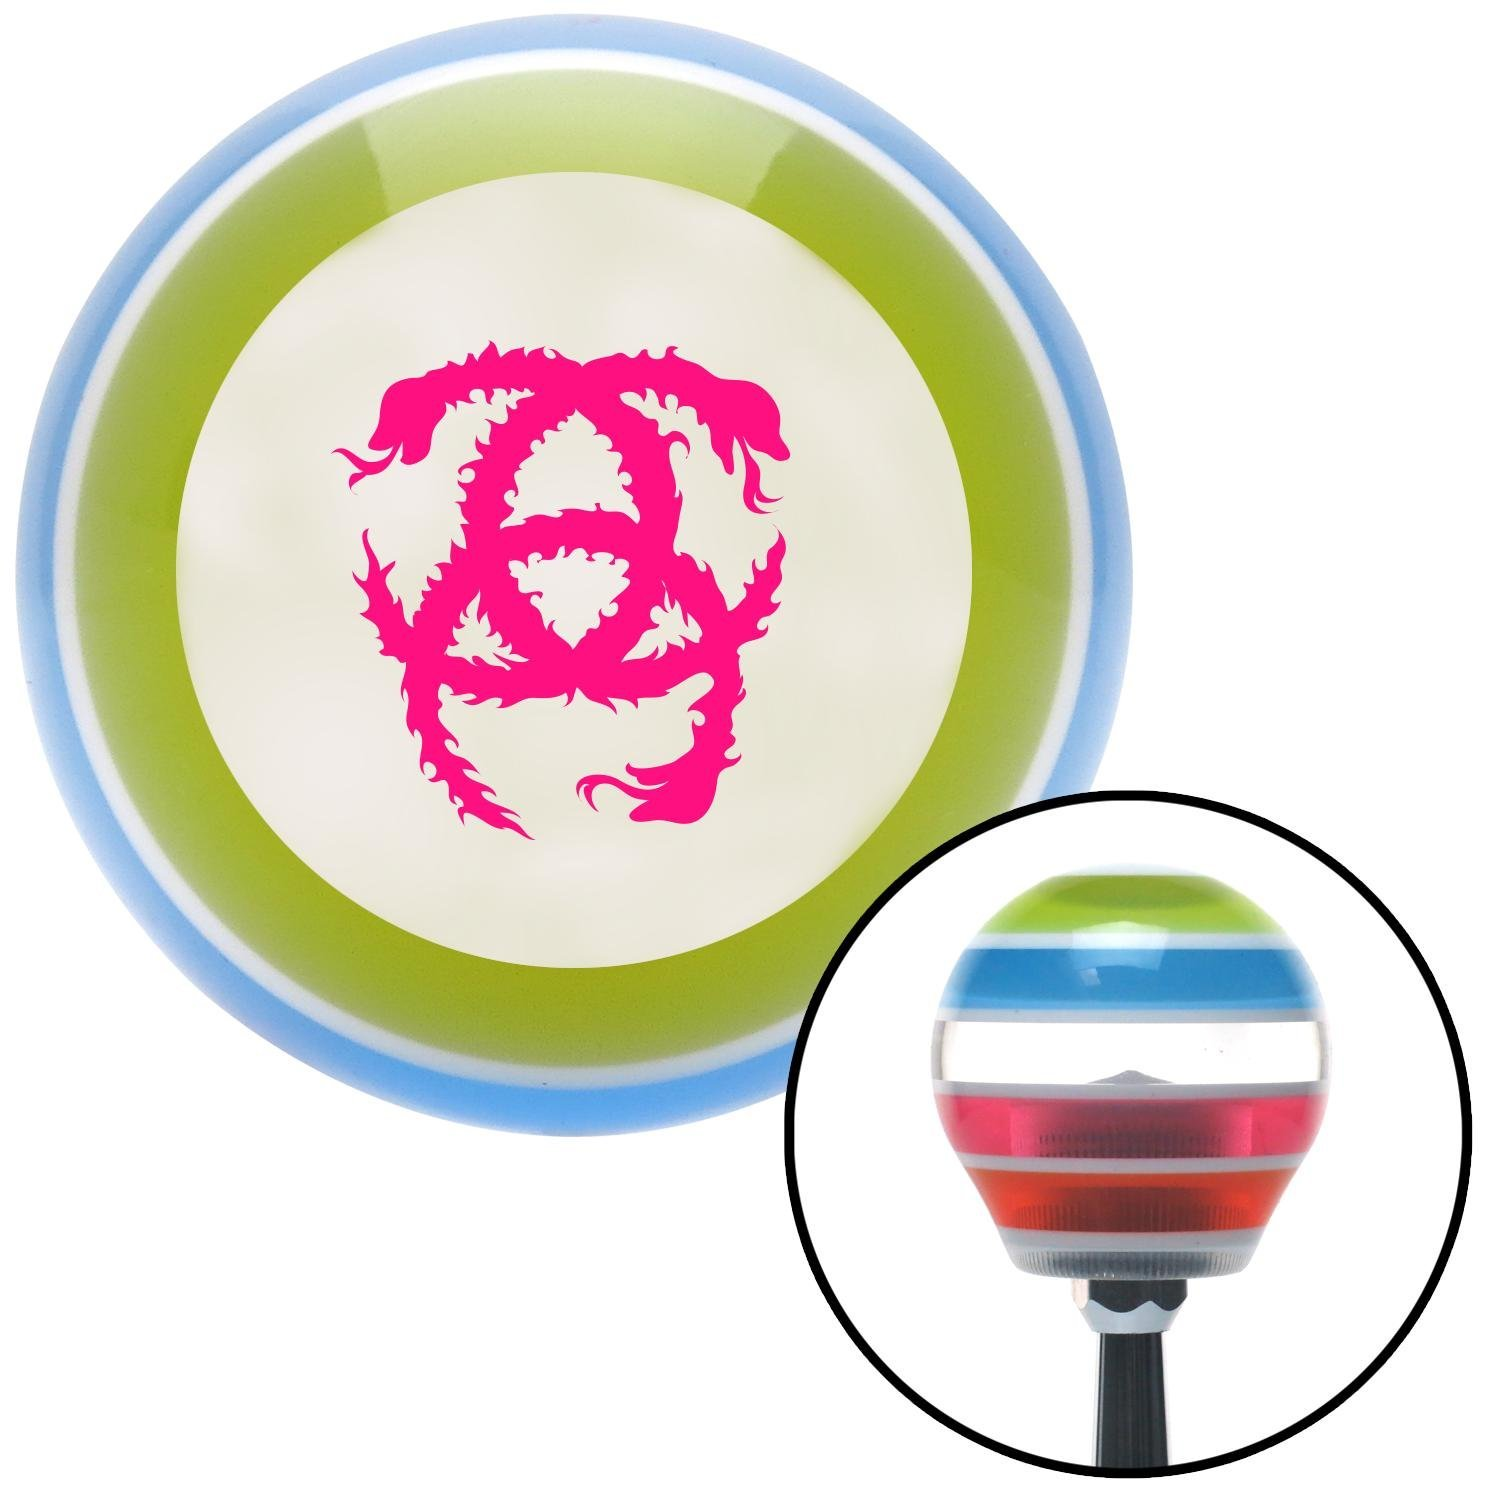 Pink Heraldic Snakes American Shifter 133071 Stripe Shift Knob with M16 x 1.5 Insert